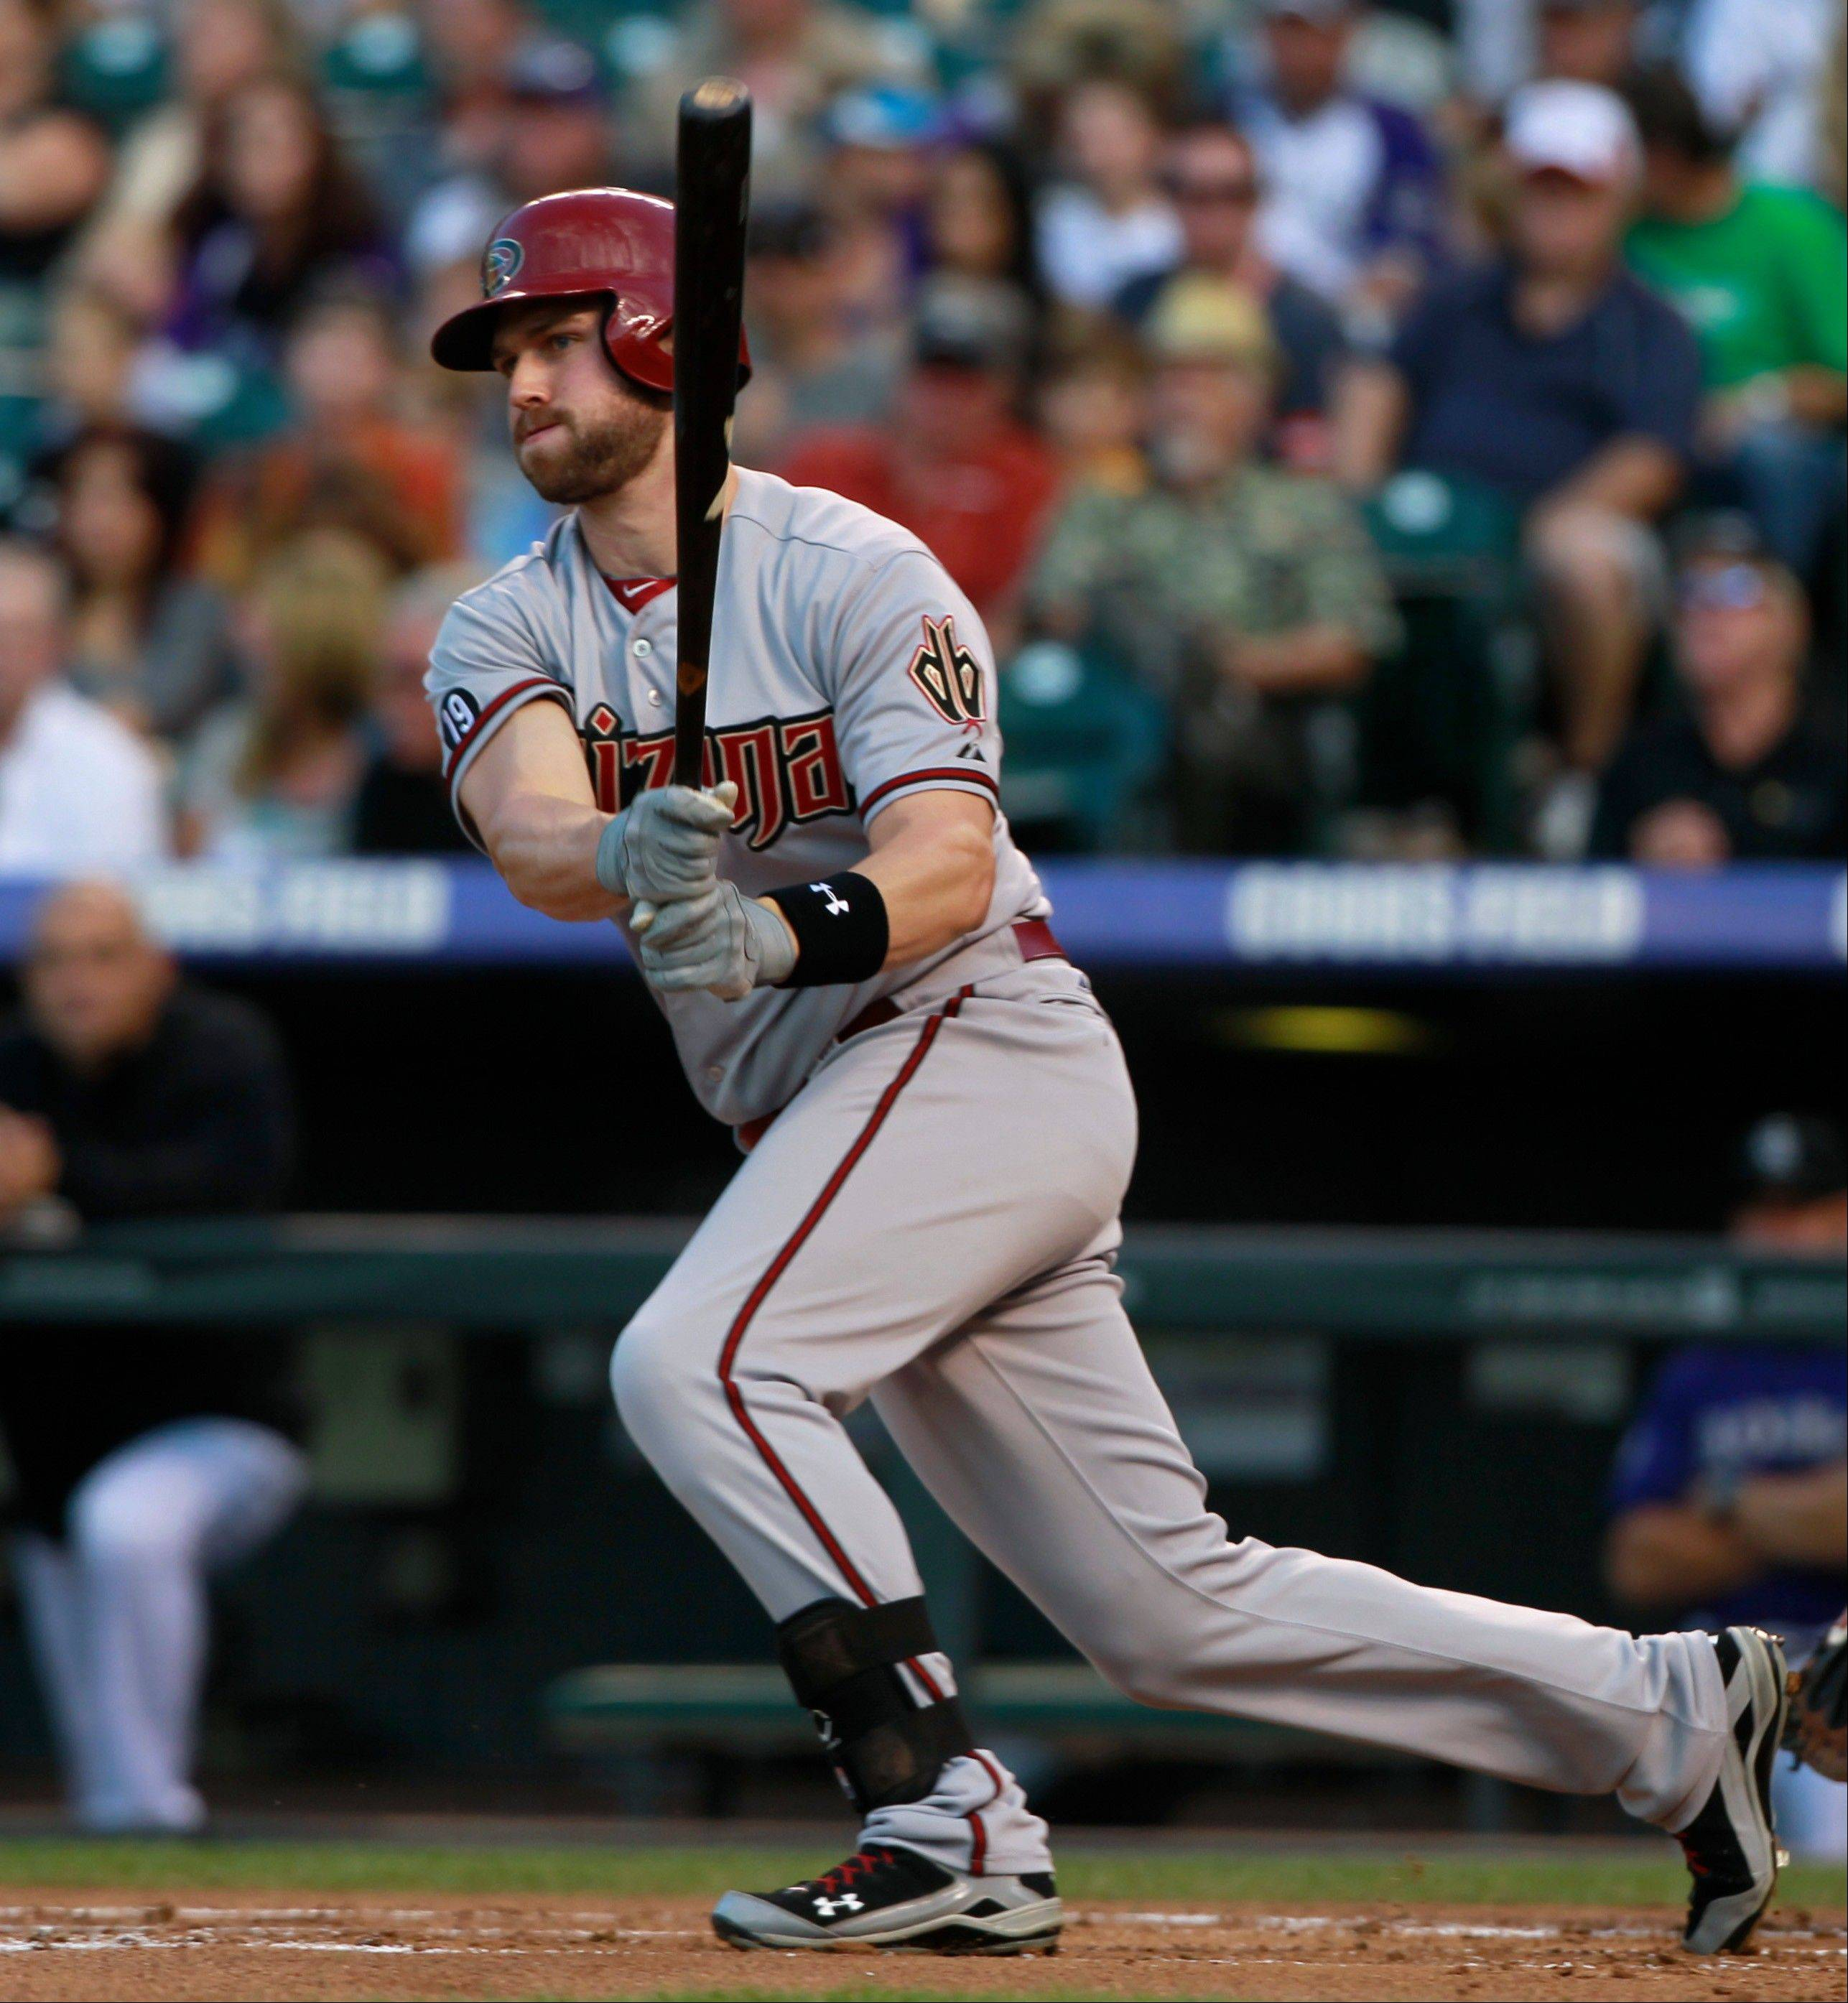 The Diamondbacks' Matt Davidson grounds out against the Colorado Rockies in Denver.